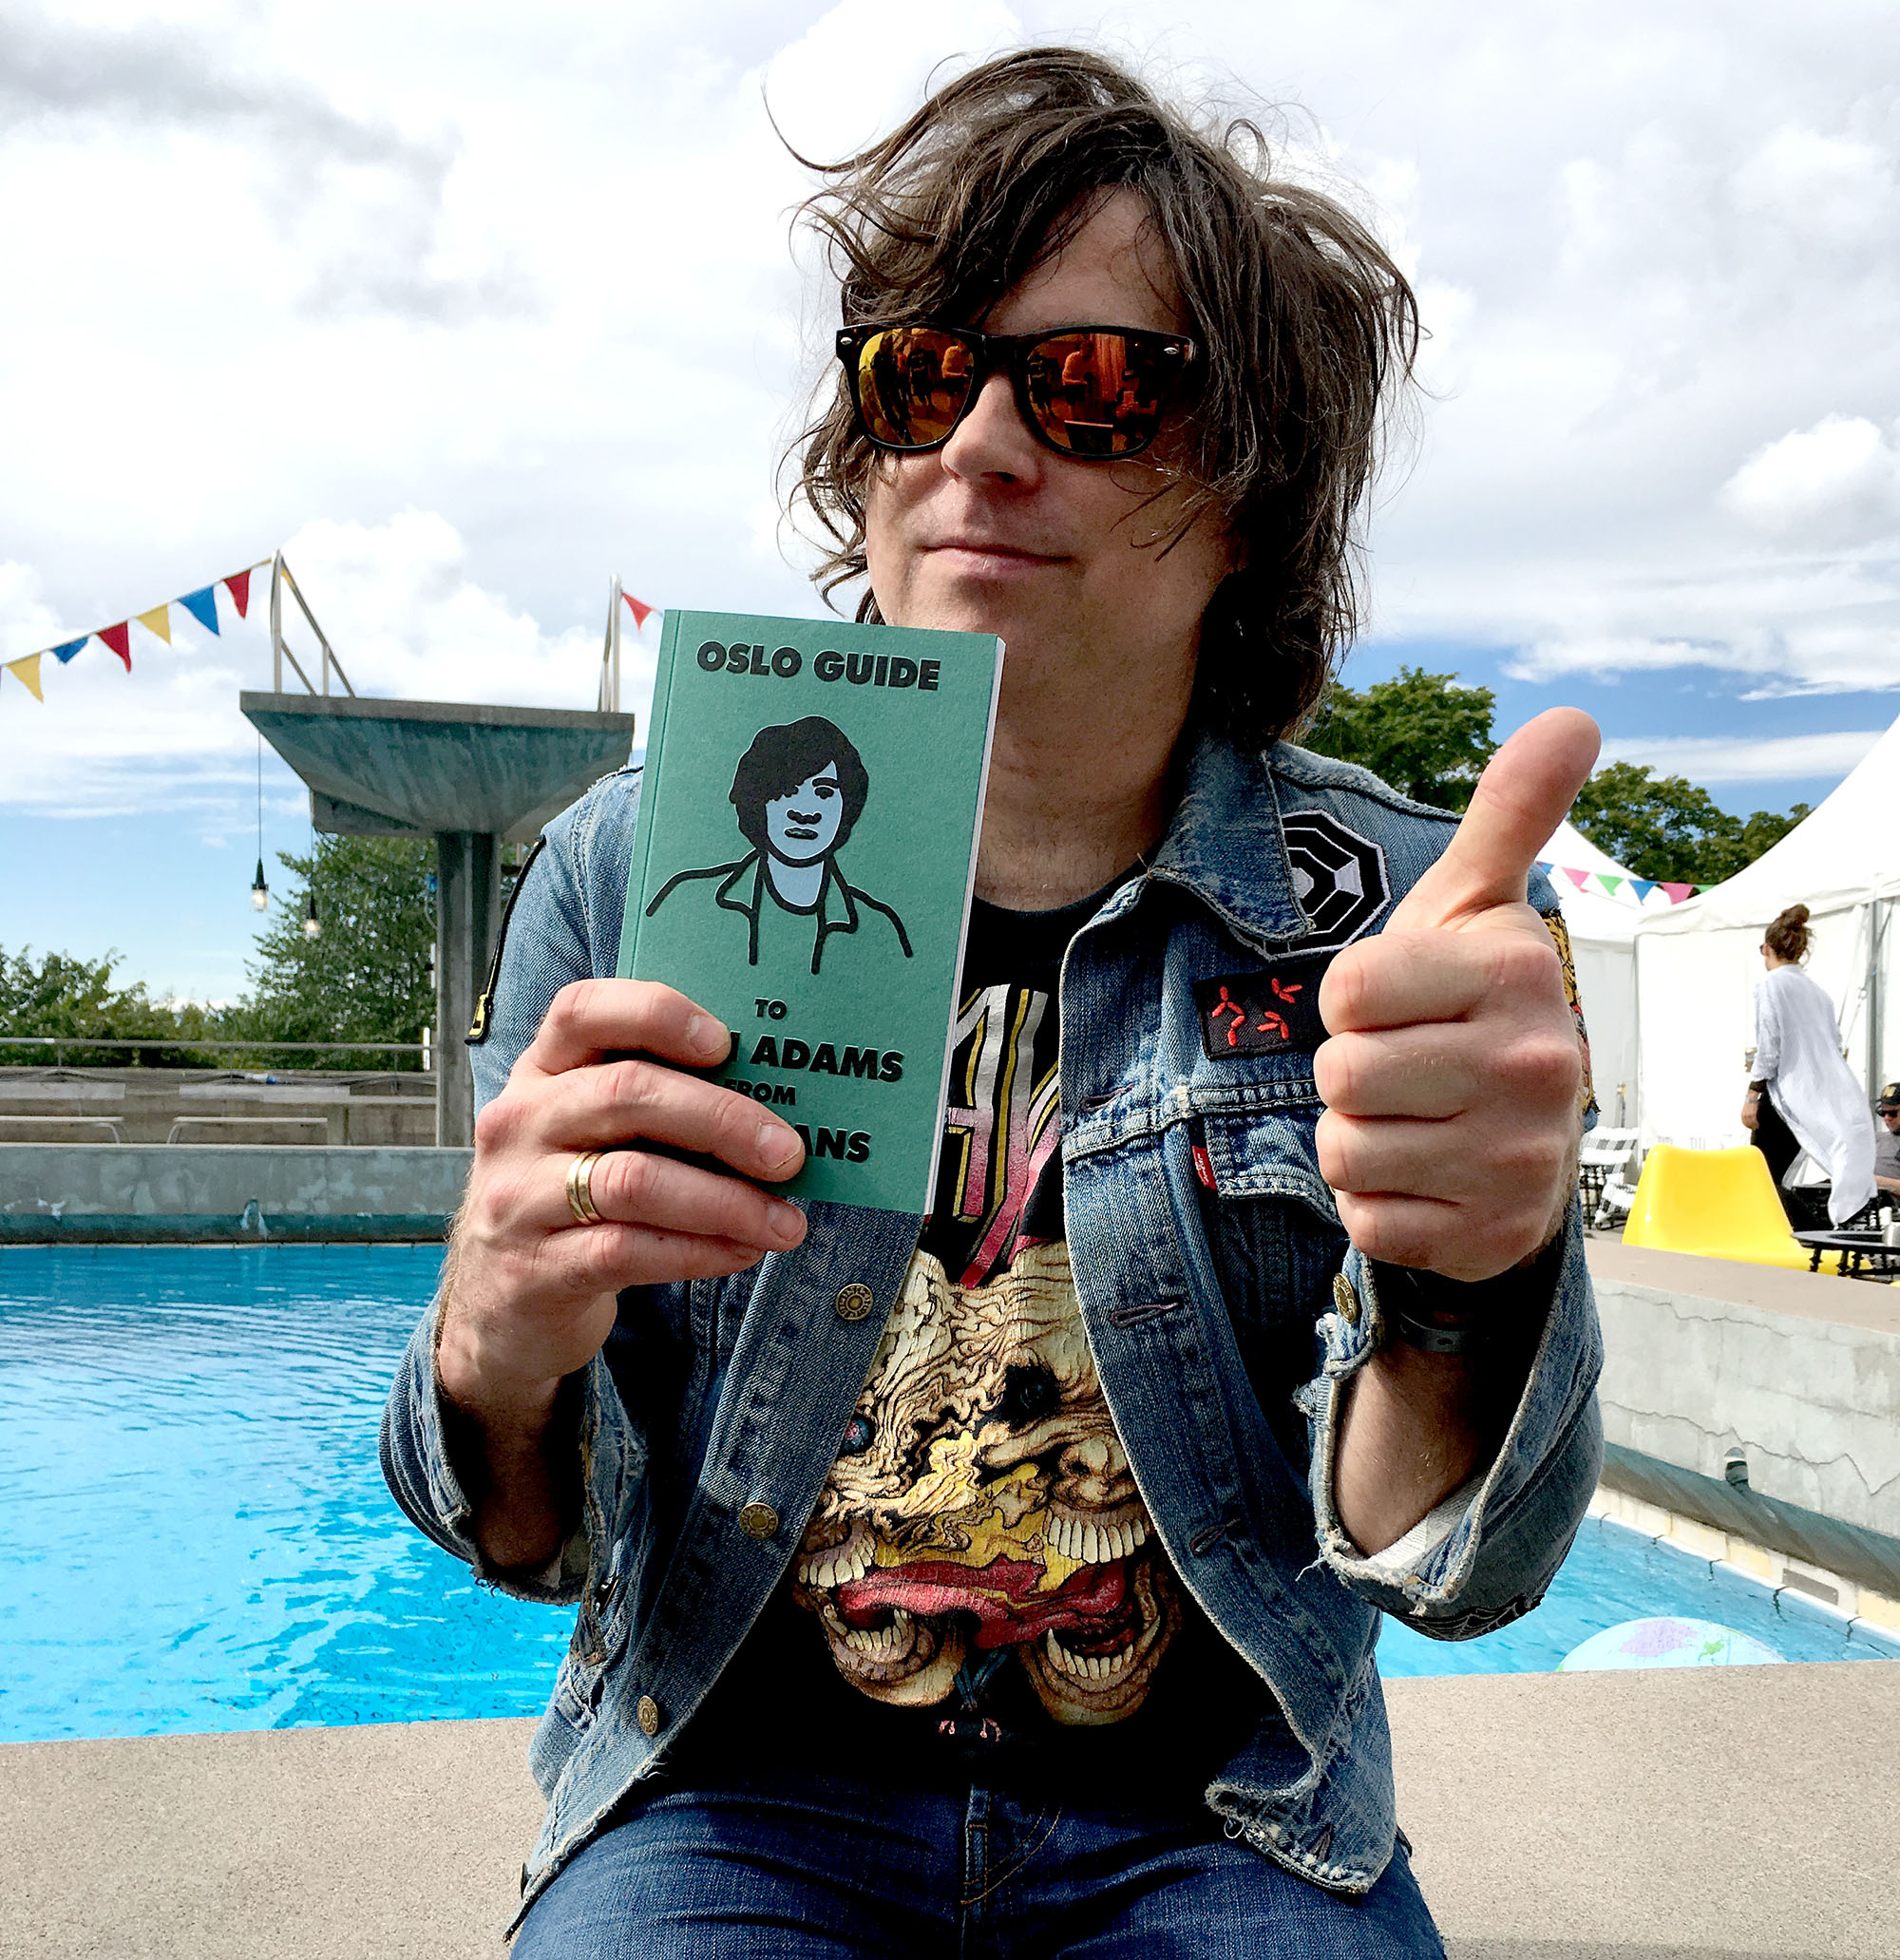 Ryan Adams with his fan guide to Oslo